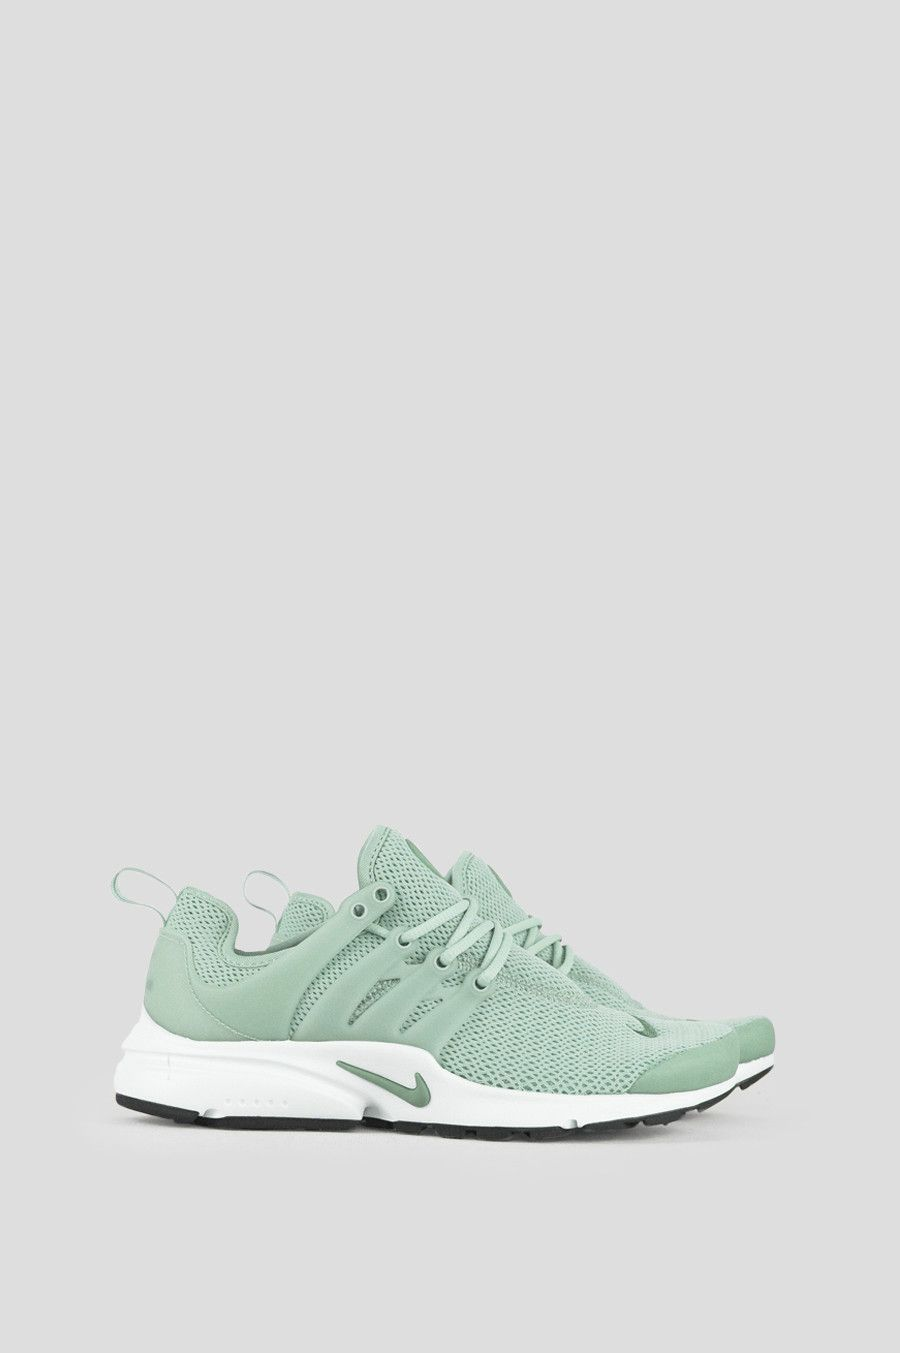 7a6dbb316b66 The Nike Air Presto Women s Shoe is inspired by the comfort and minimalism  of a classic